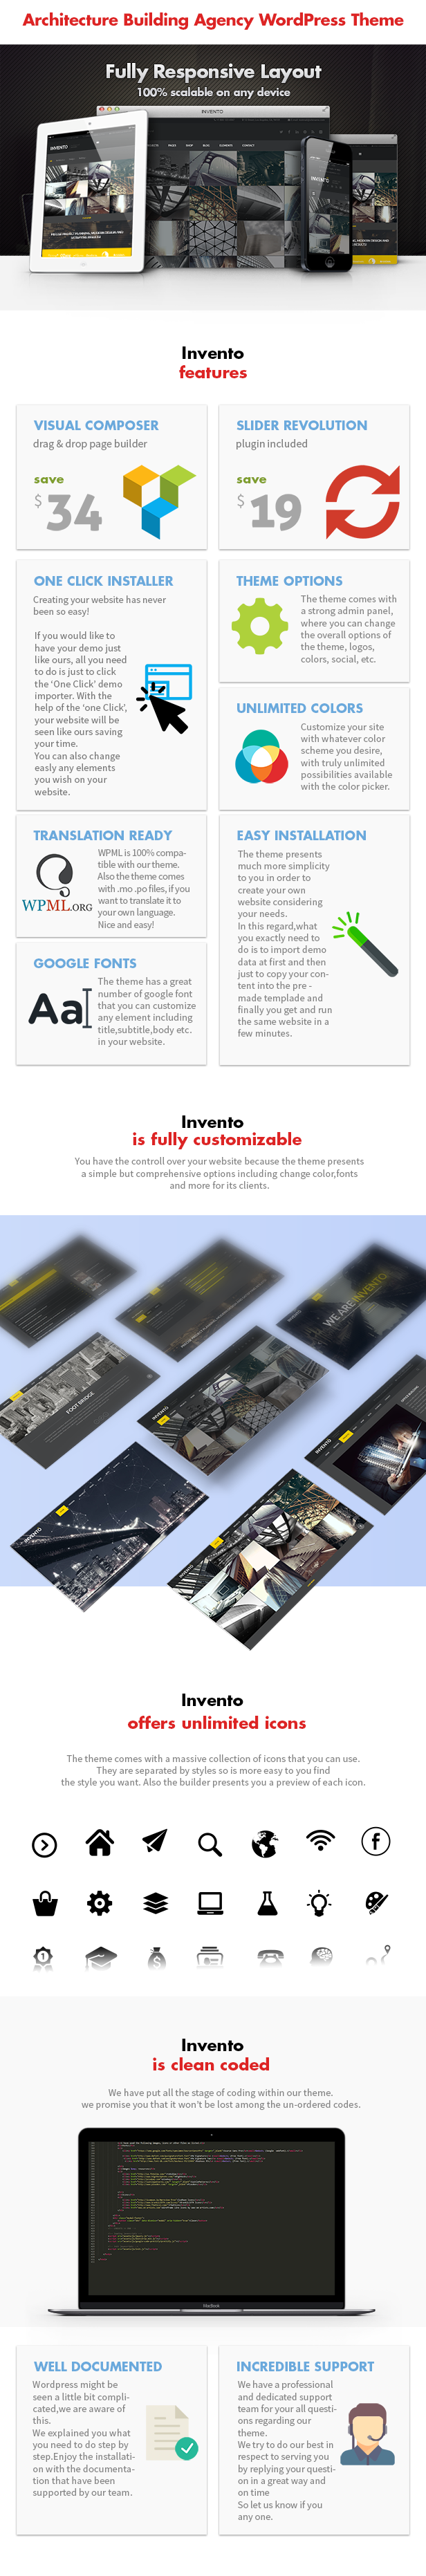 Invento | Architecture Building Agency Theme - 6